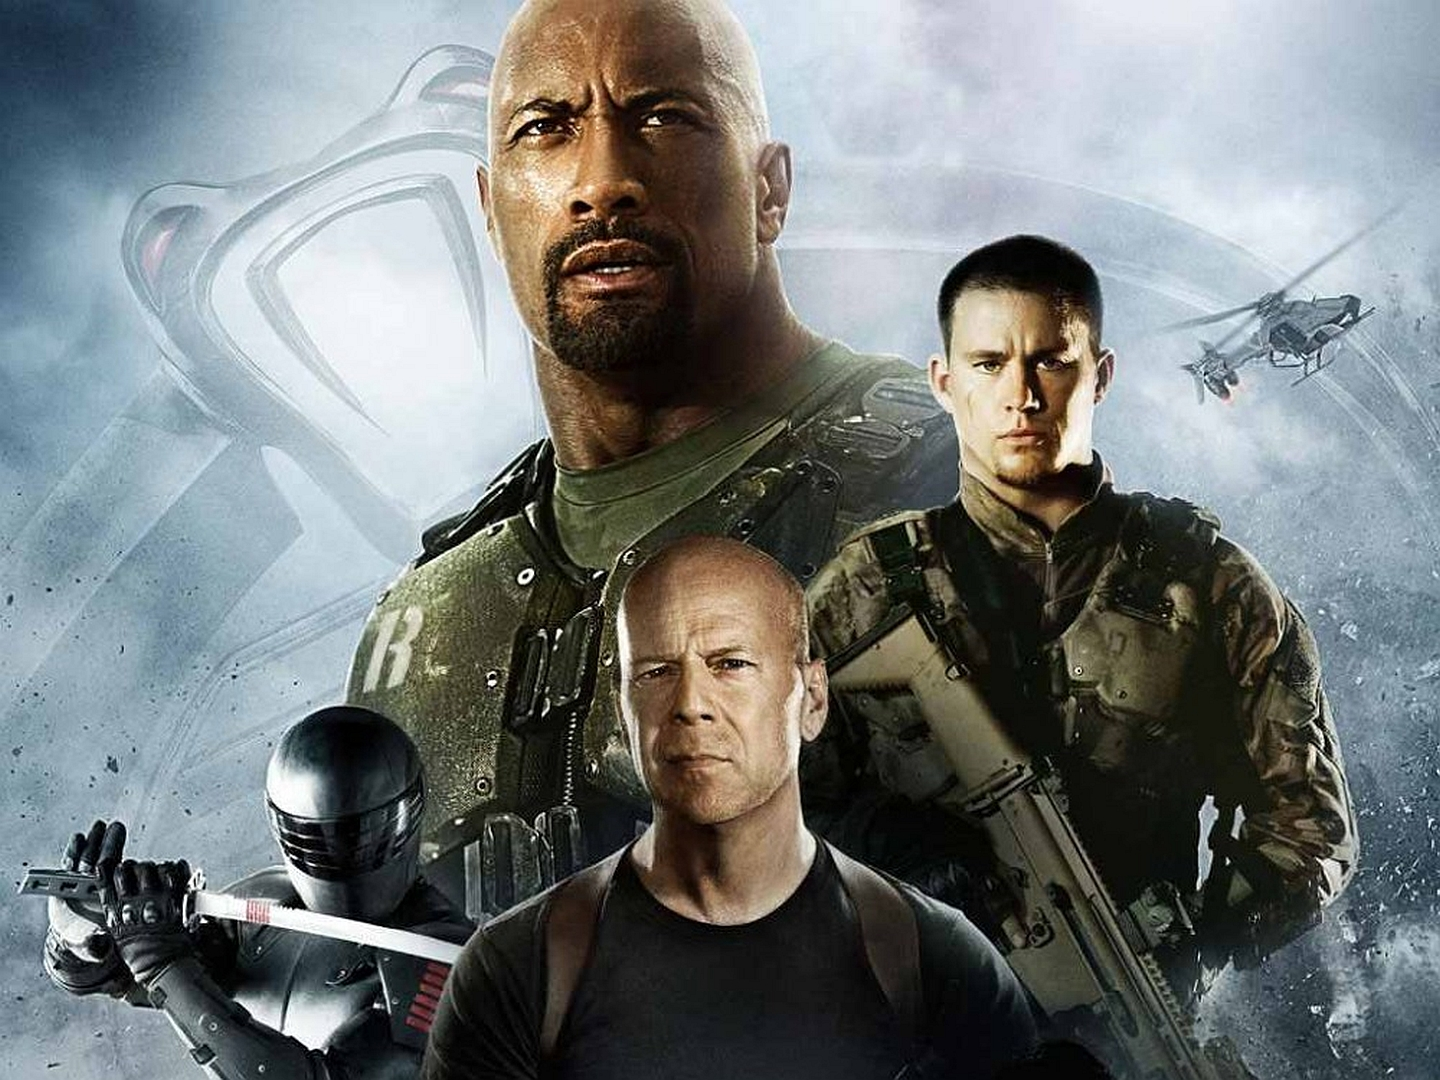 38 G.I. Joe: Retaliation HD Wallpapers | Backgrounds - Wallpaper Abyss